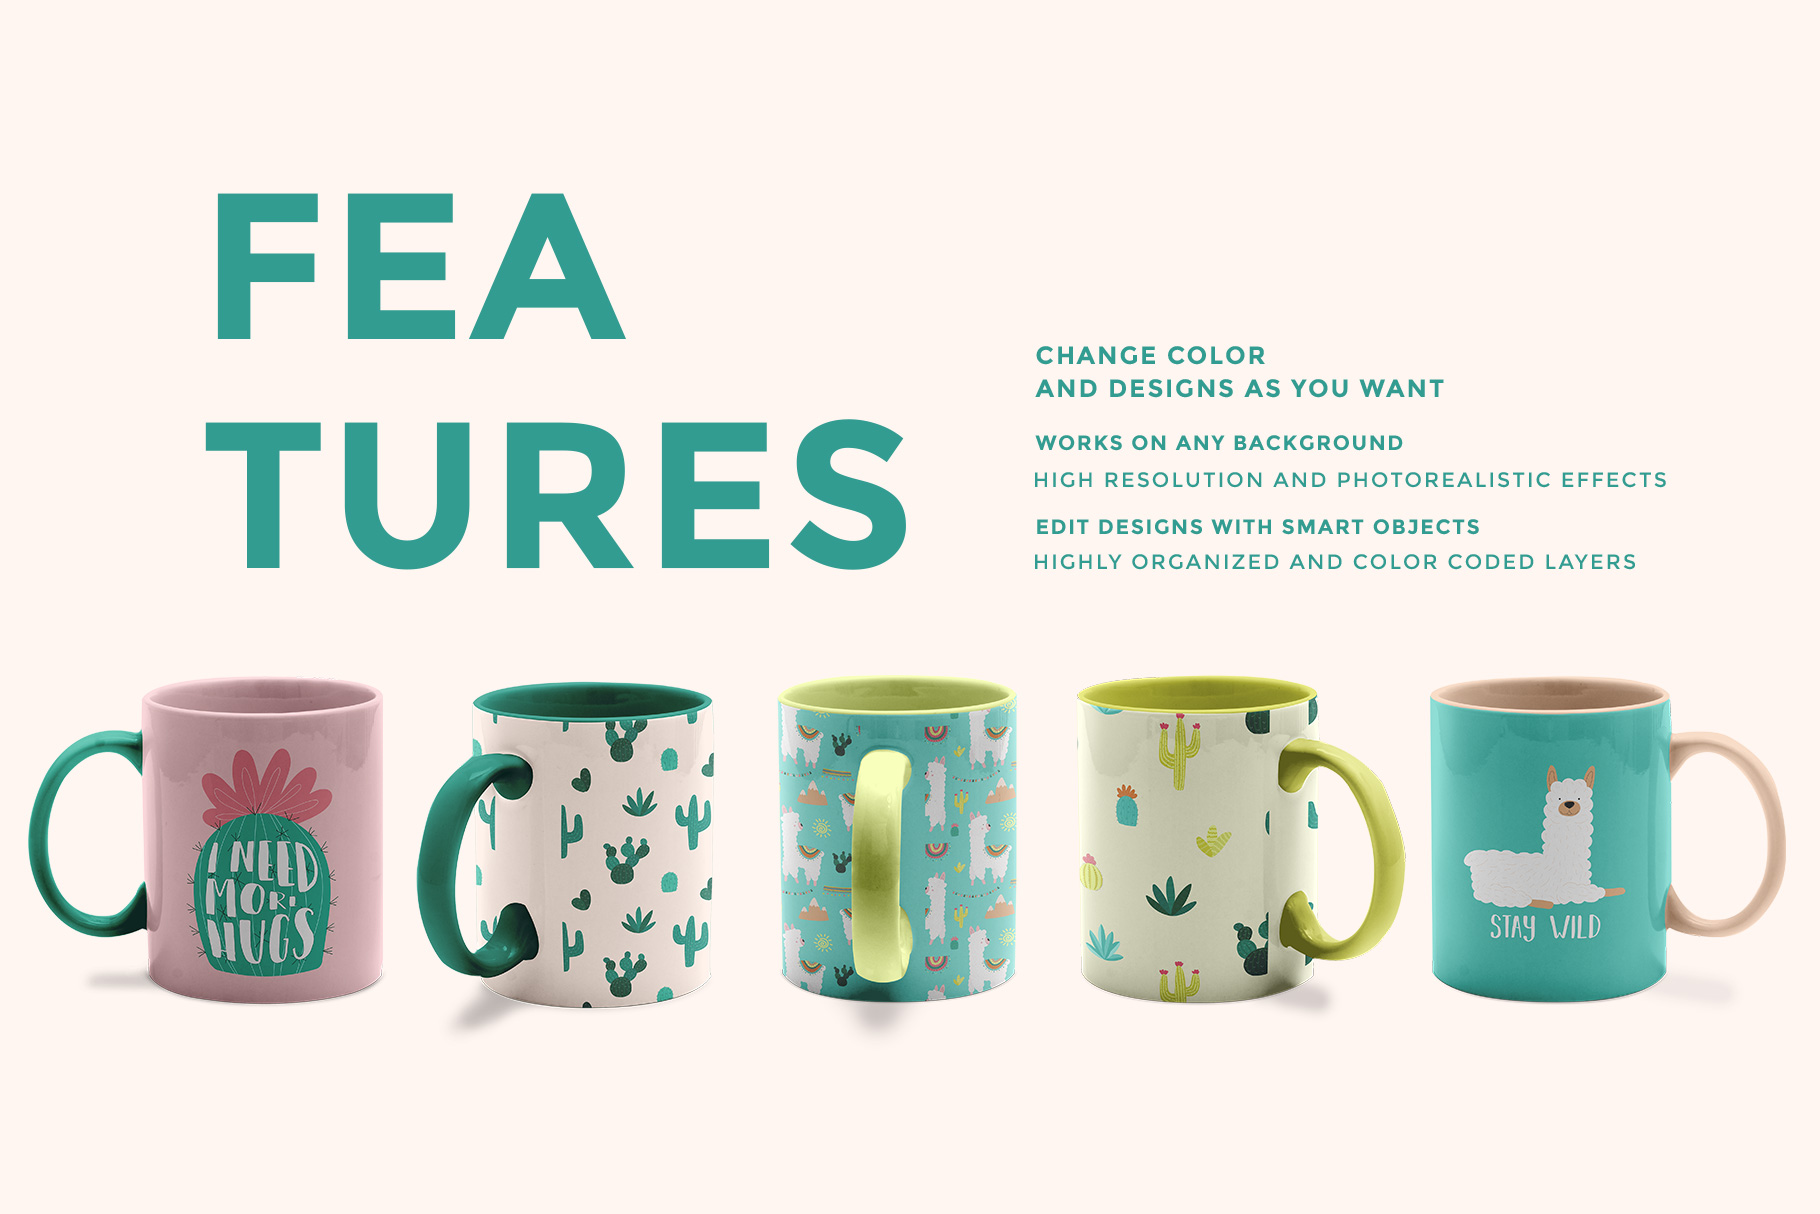 features of the ceramic coffee mugs mockup set